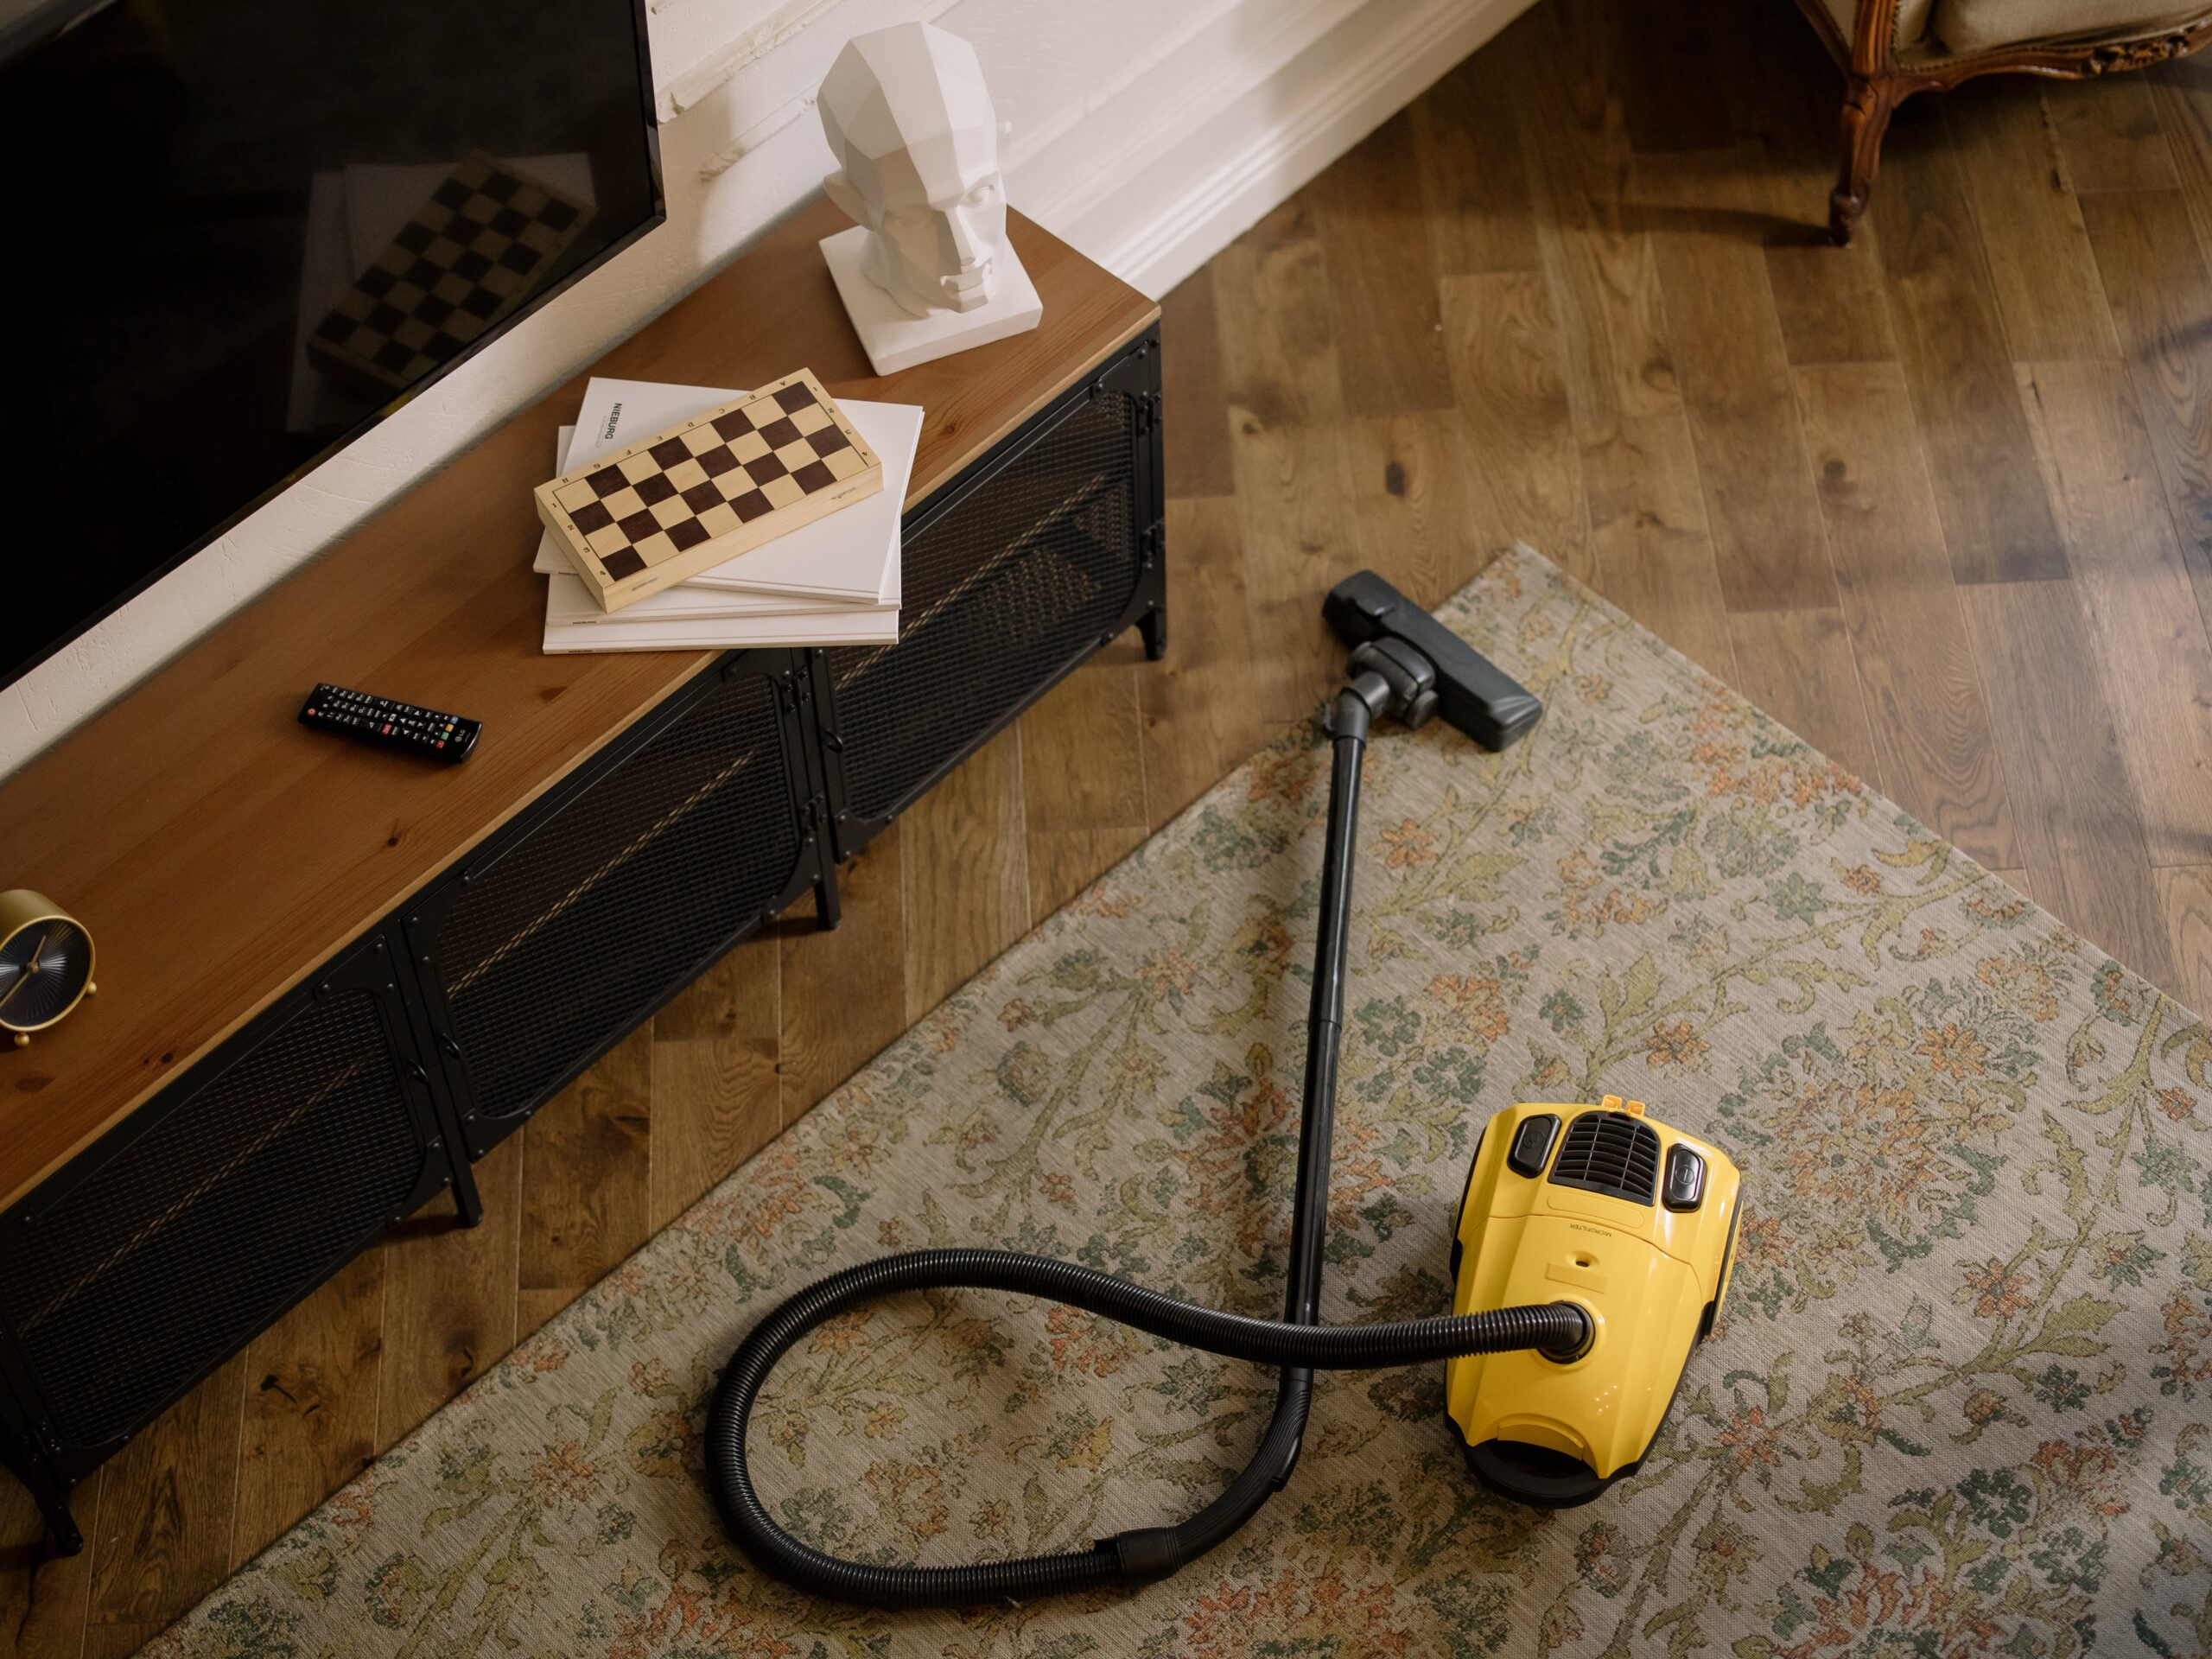 Yellow Vacuum cleaner on the carpet